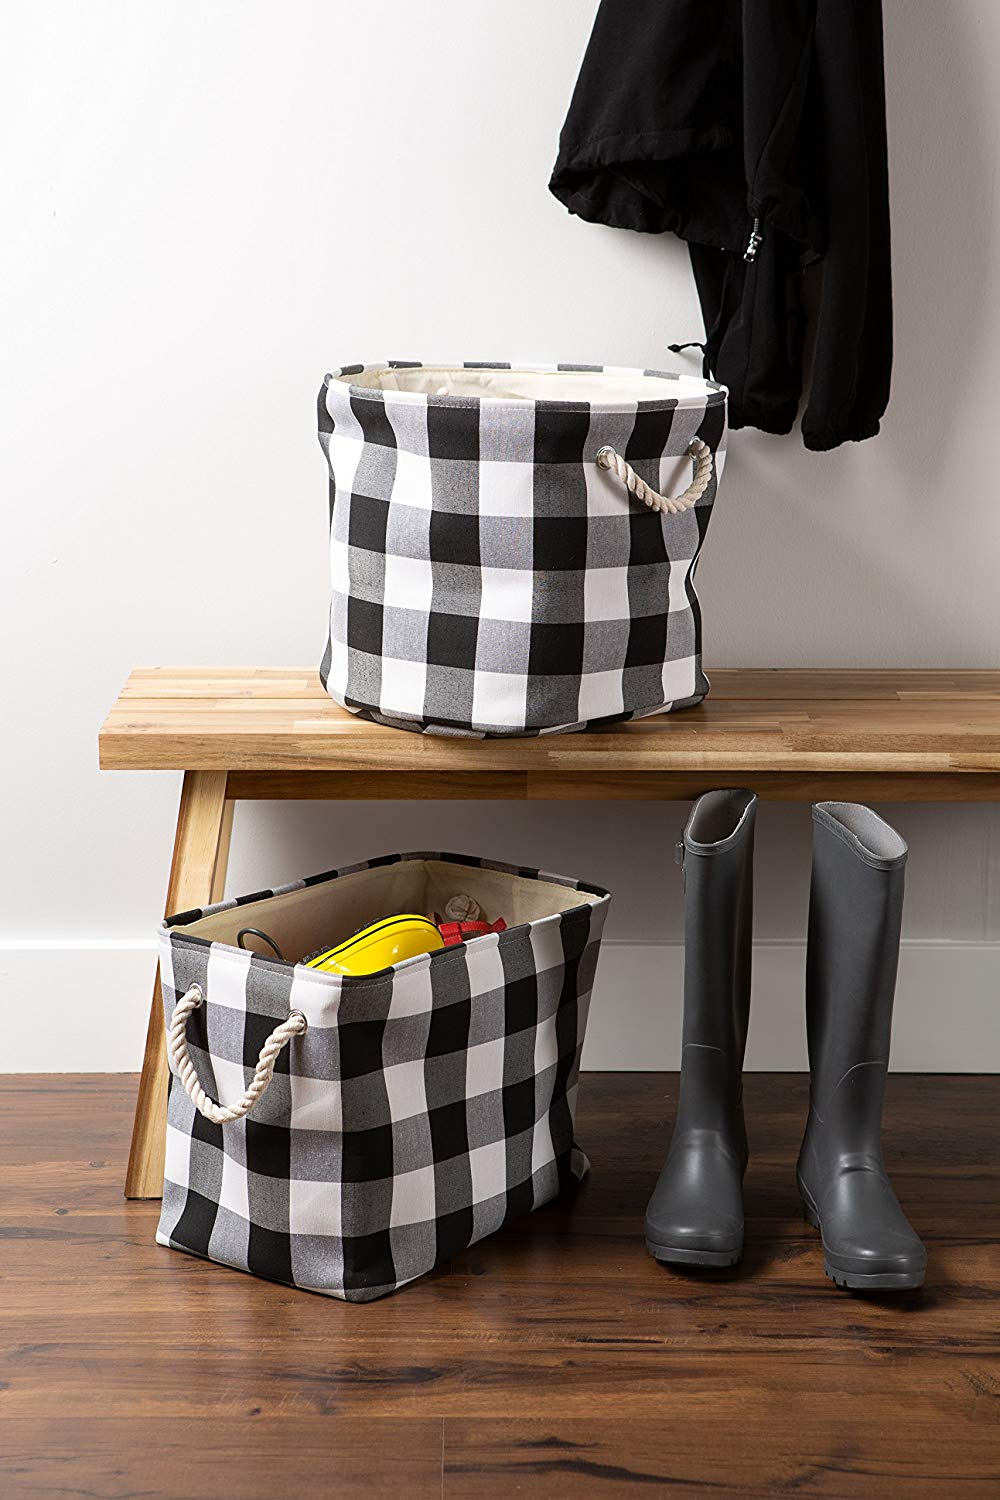 Use this buffalo check storage bin to tote all of your Christmas gifts in it to parties and events. A super fun and trendy way to deliver good cheer!